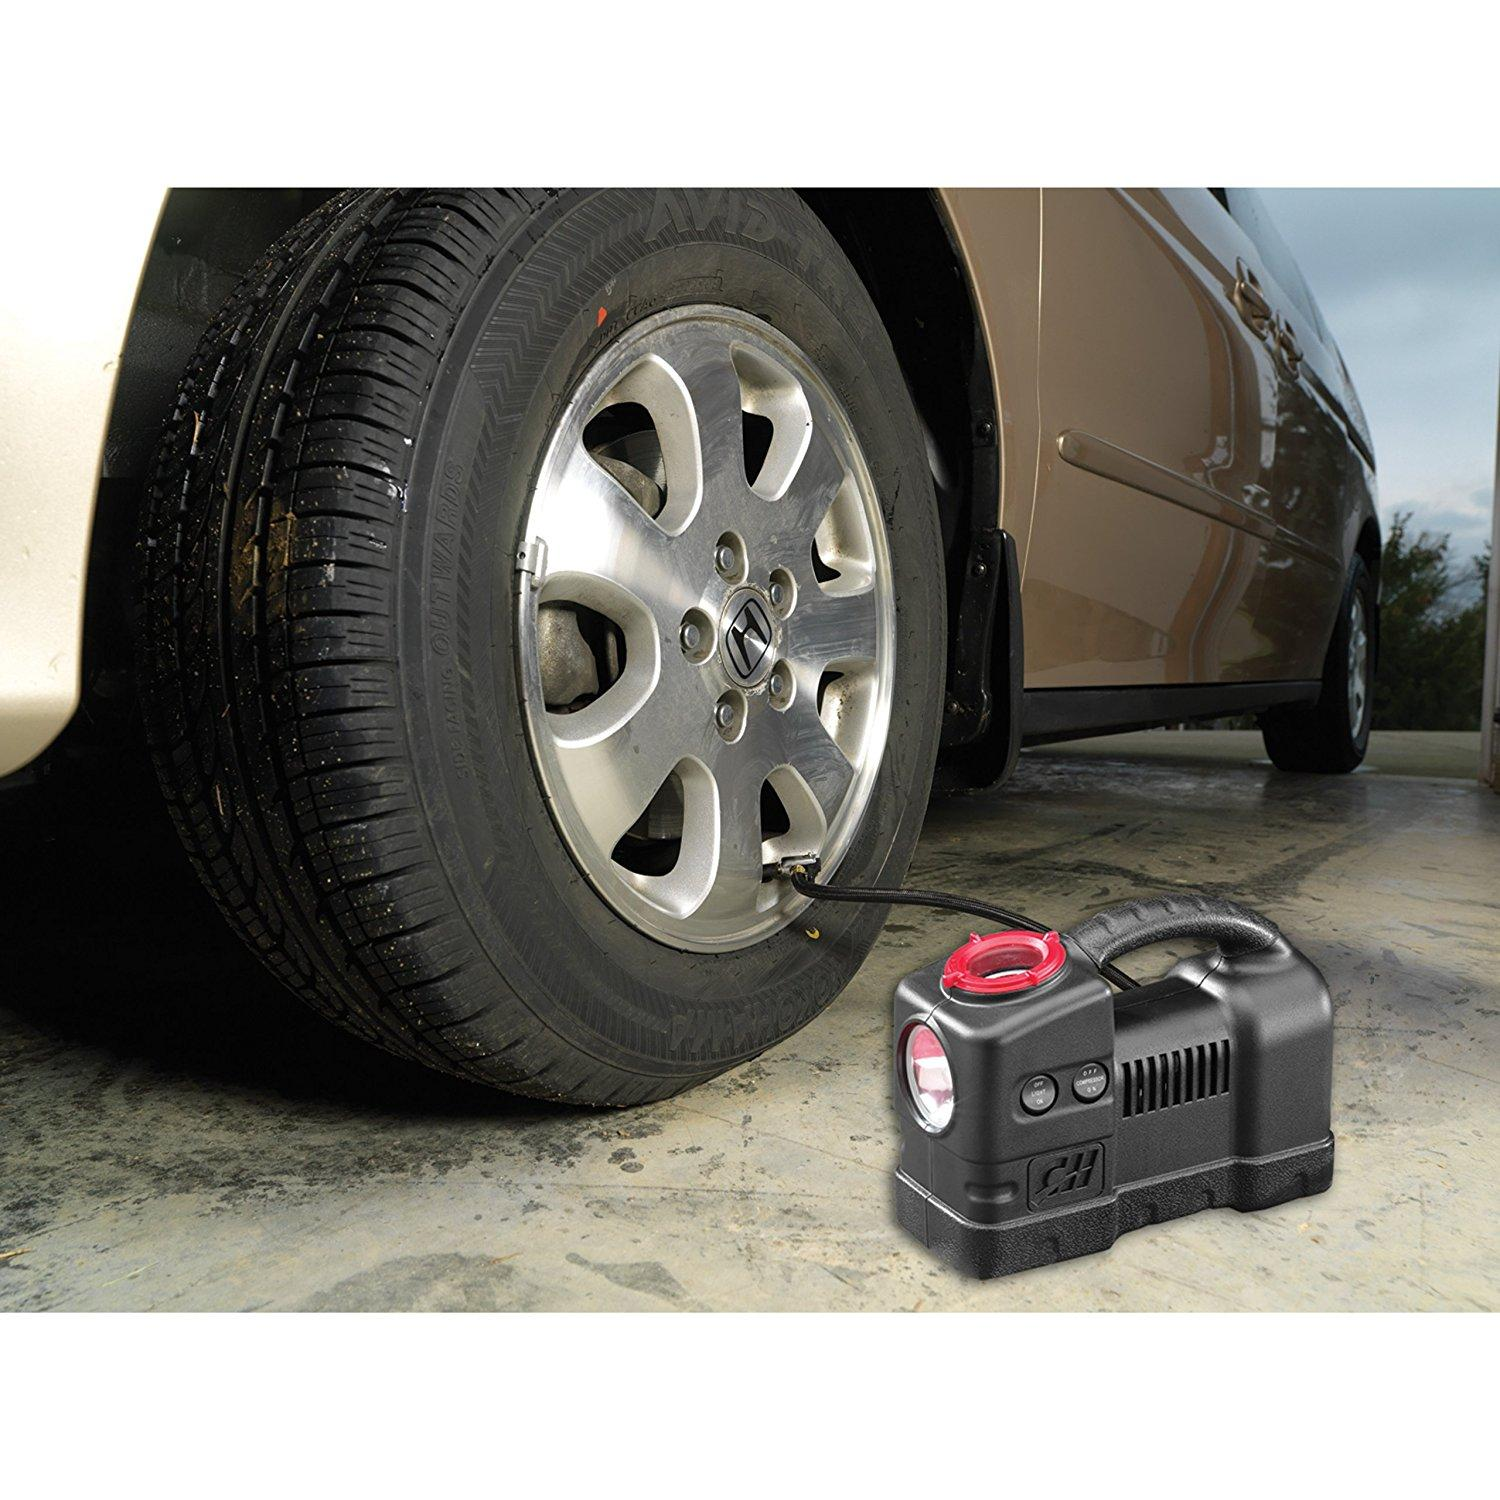 Amazon.com: 12 Volt Inflator With Light, 120 PSI Portable